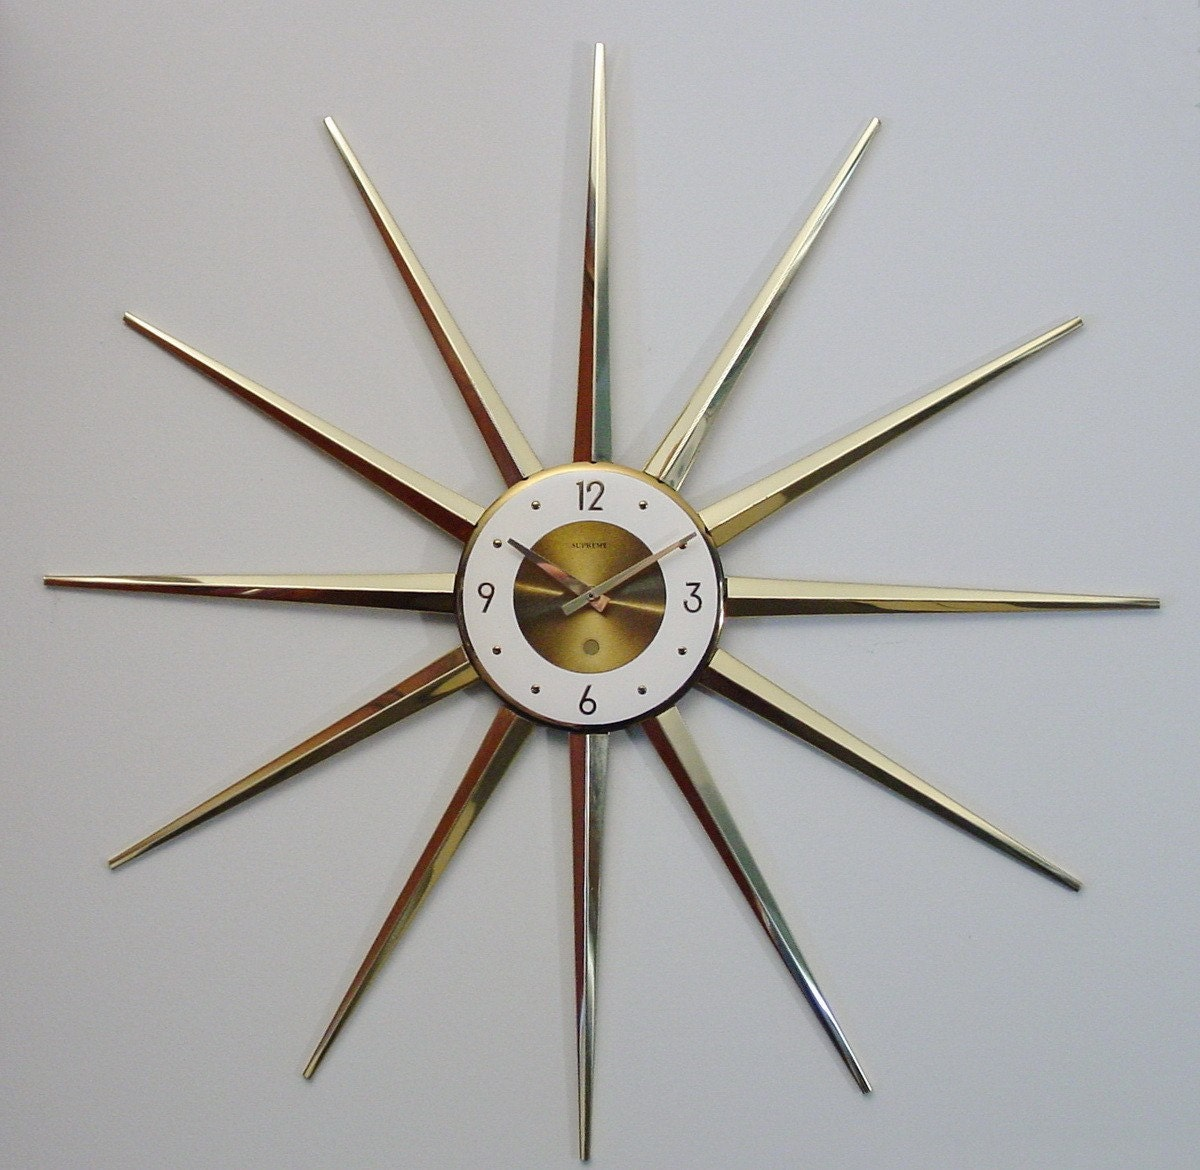 Vintage Starburst Wall Clock Sunburst Atomic Modernist Spike